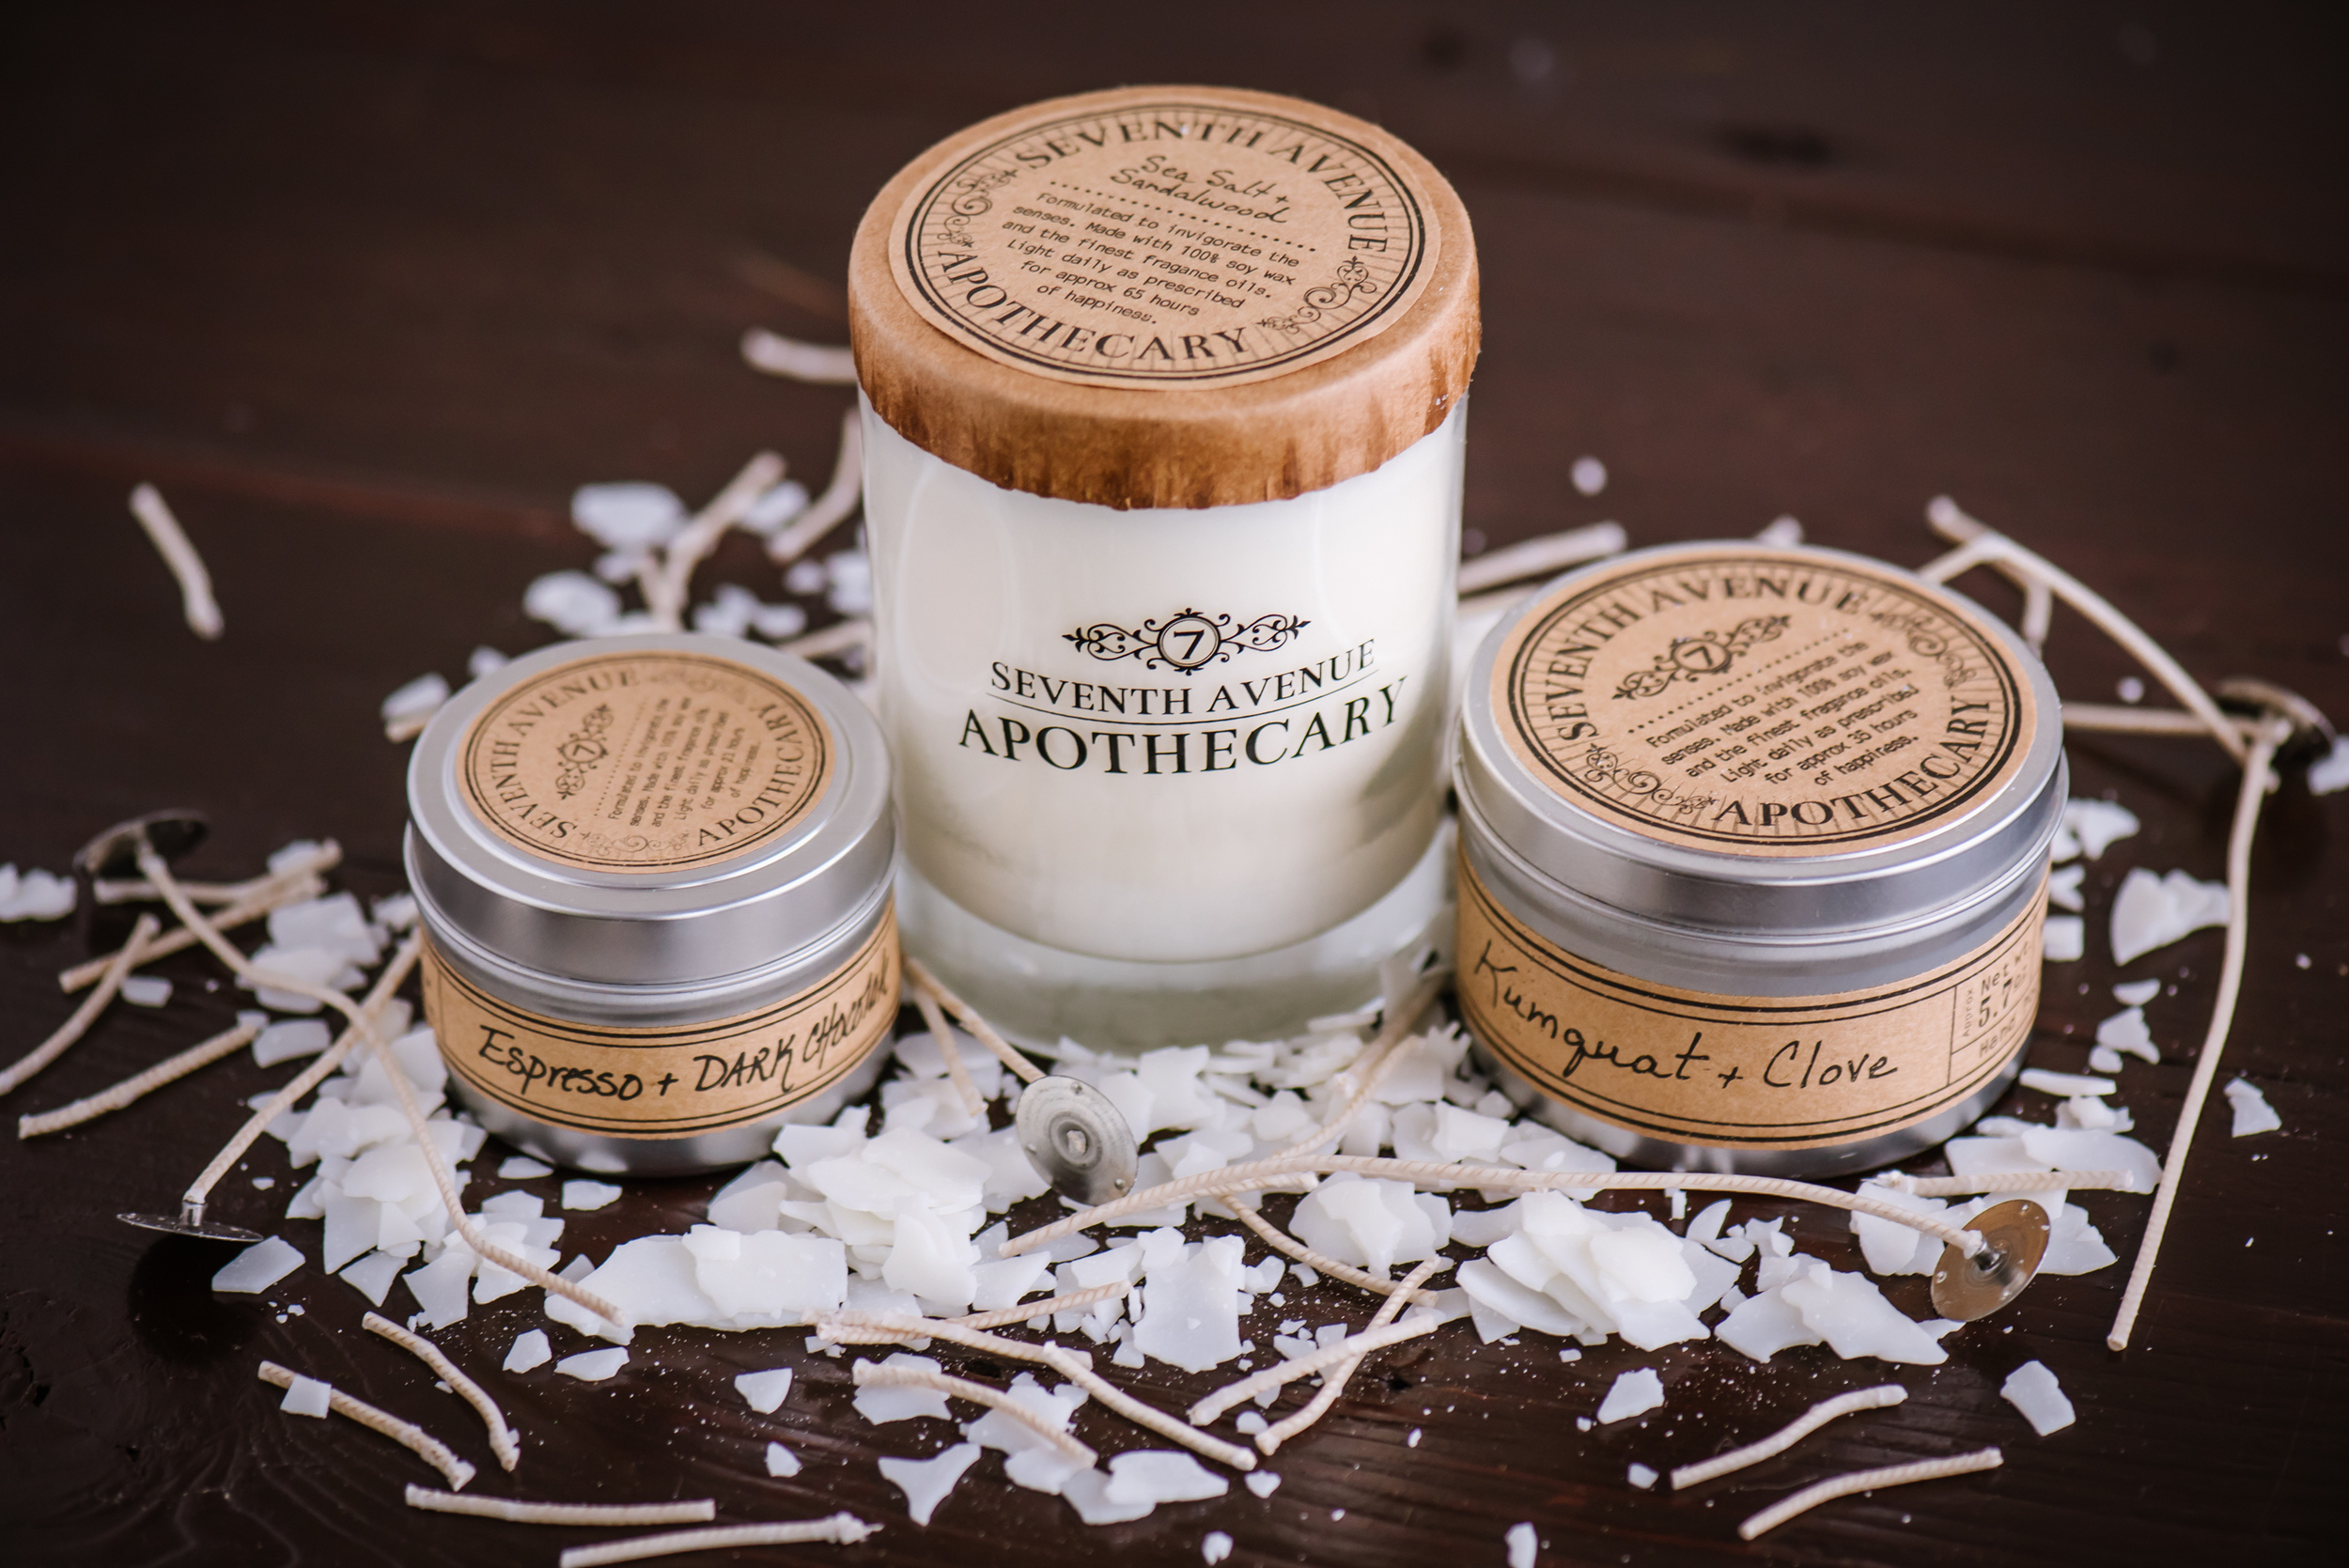 The next small business to come to the studio was Seventh Ave Apothecary! They needed all new images of their products for their site plus a few lifestyle portraits of the lovely ladies behind it all. Becky's new warehouse is now neighbors with them in Ybor!